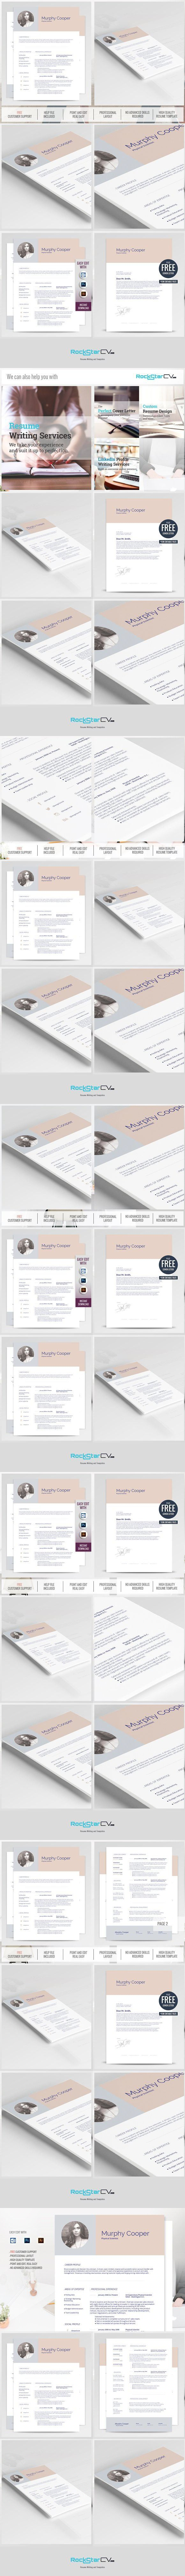 resume template free cover letter resume templates - Cover Letter And Resume Format